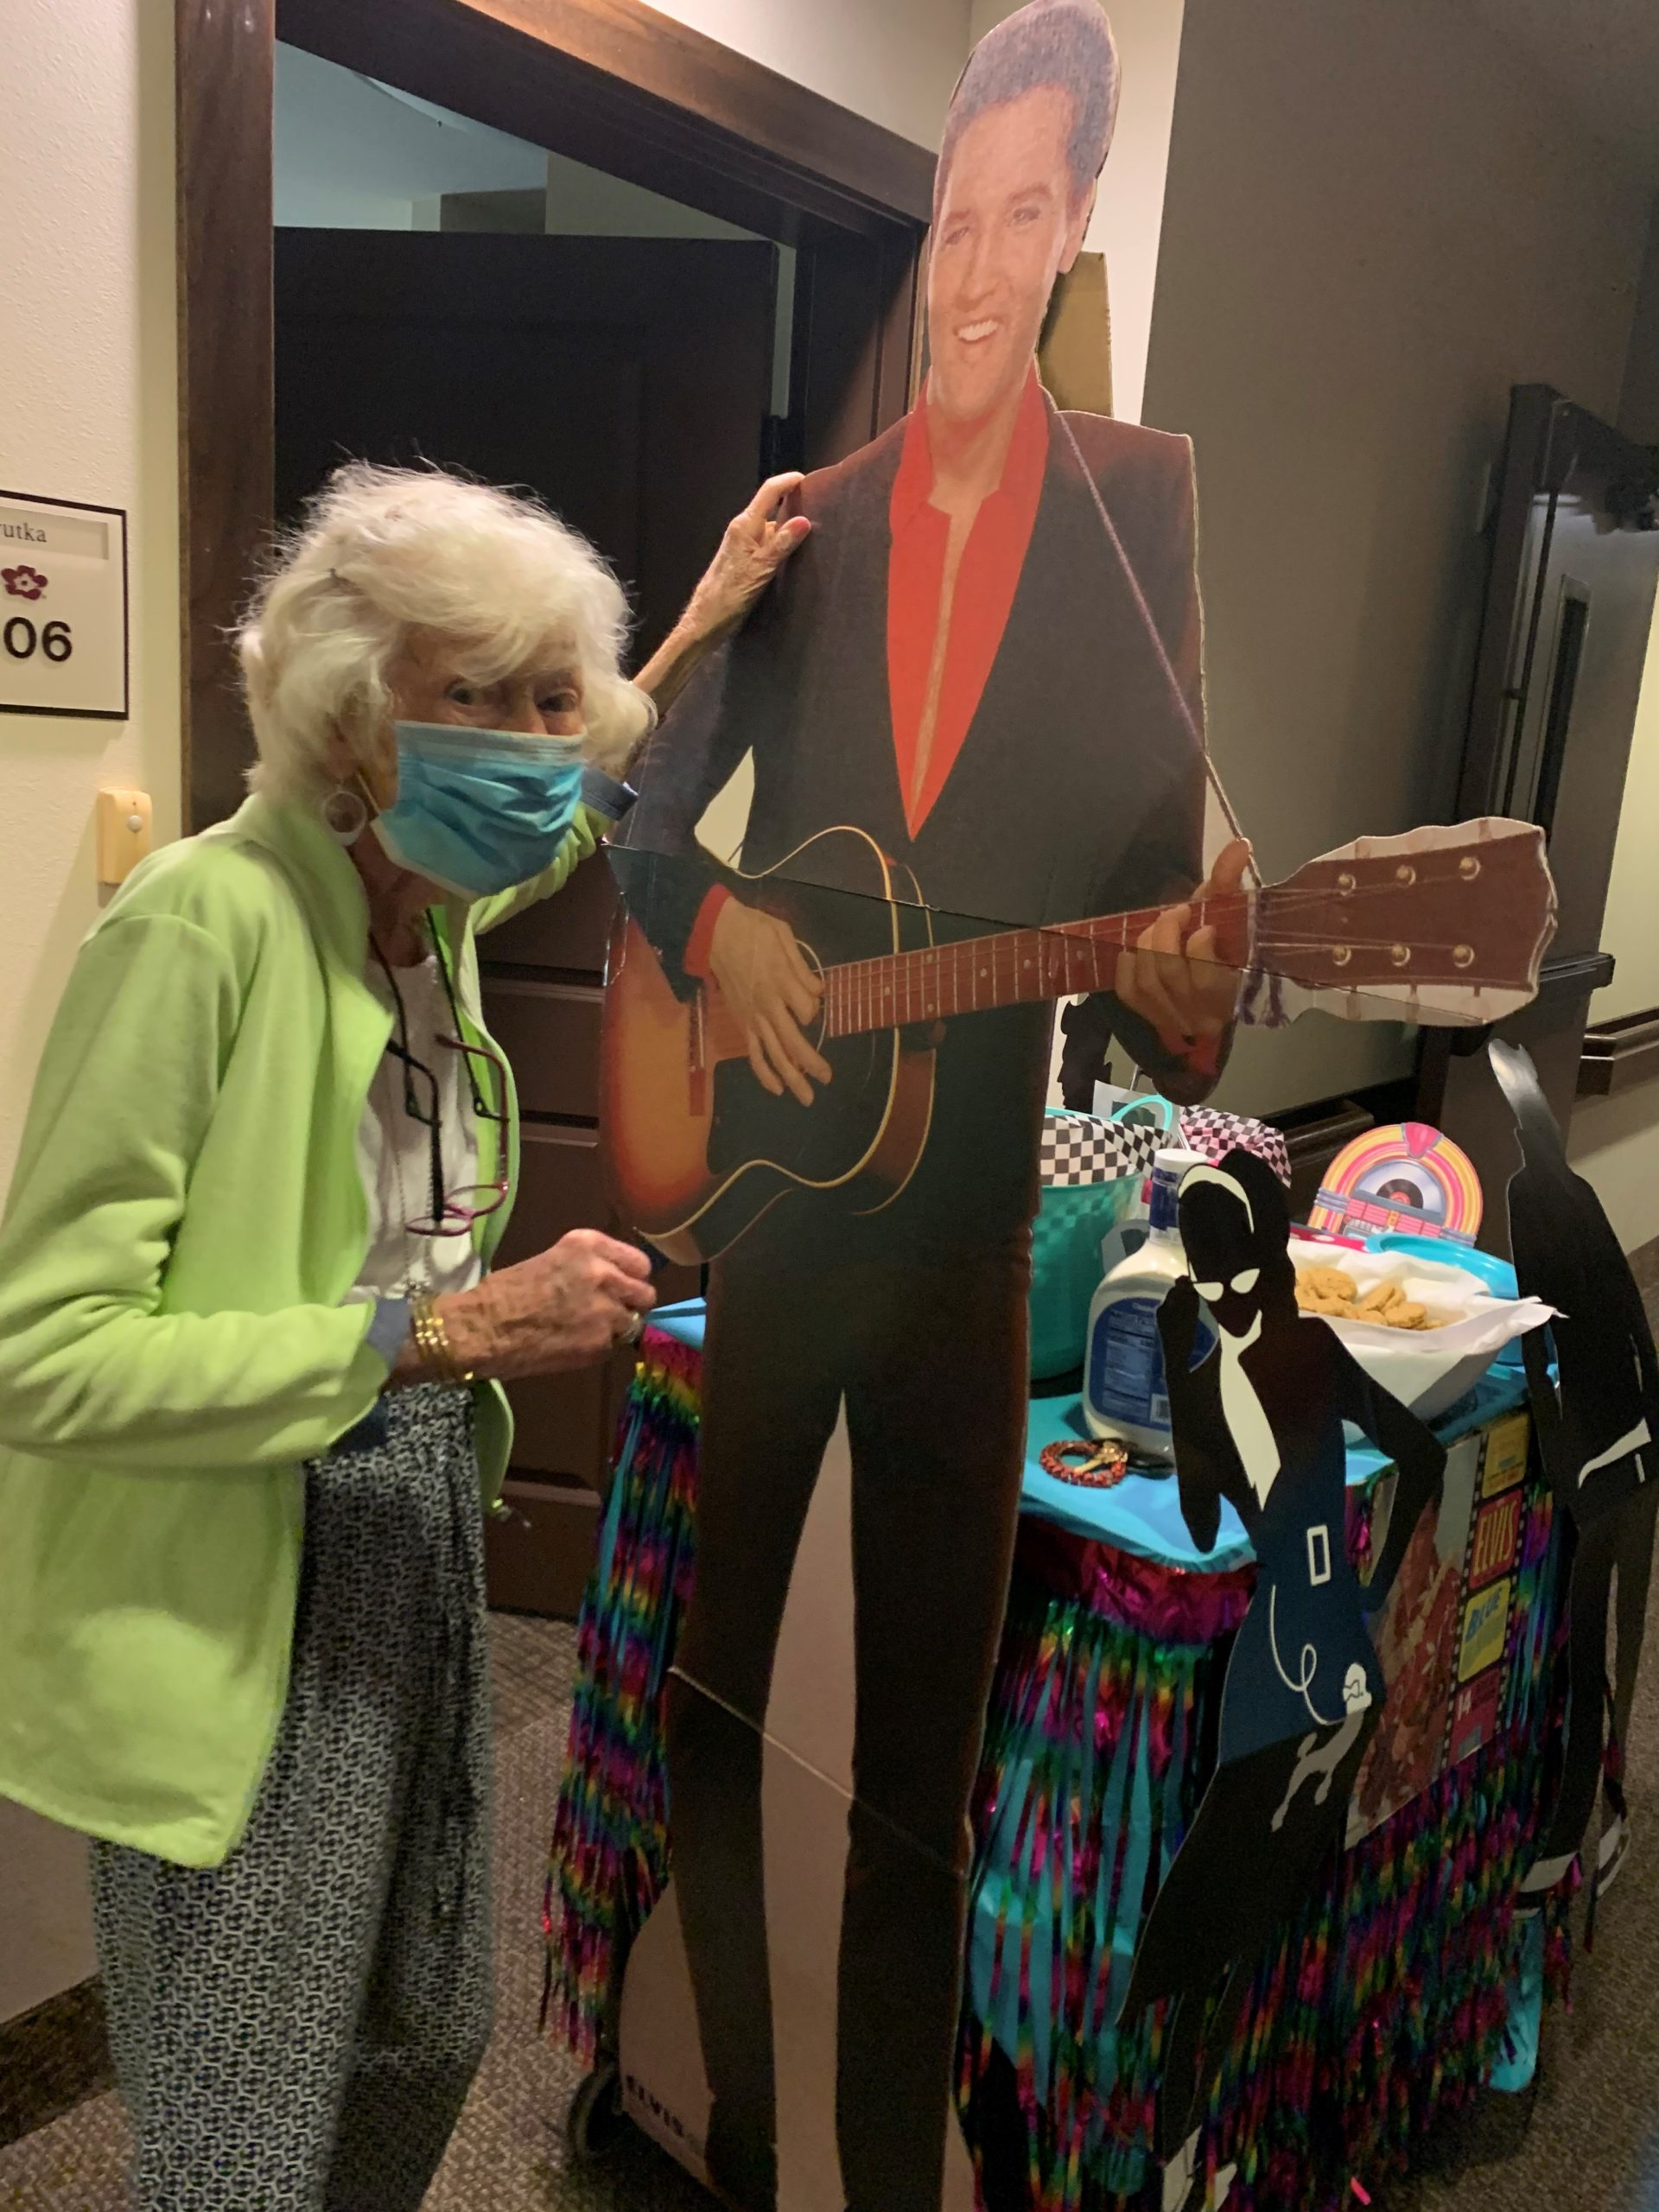 Joan was so excited when she opened her door to this week's mystery cart- Elvis Presley Themed (One of his wife's favorite singers)! Residents danced to his music and tried some of his favorite foods- Peanut Butter and Banana Sandwiches, Monkeybread, and Fried Pickles!